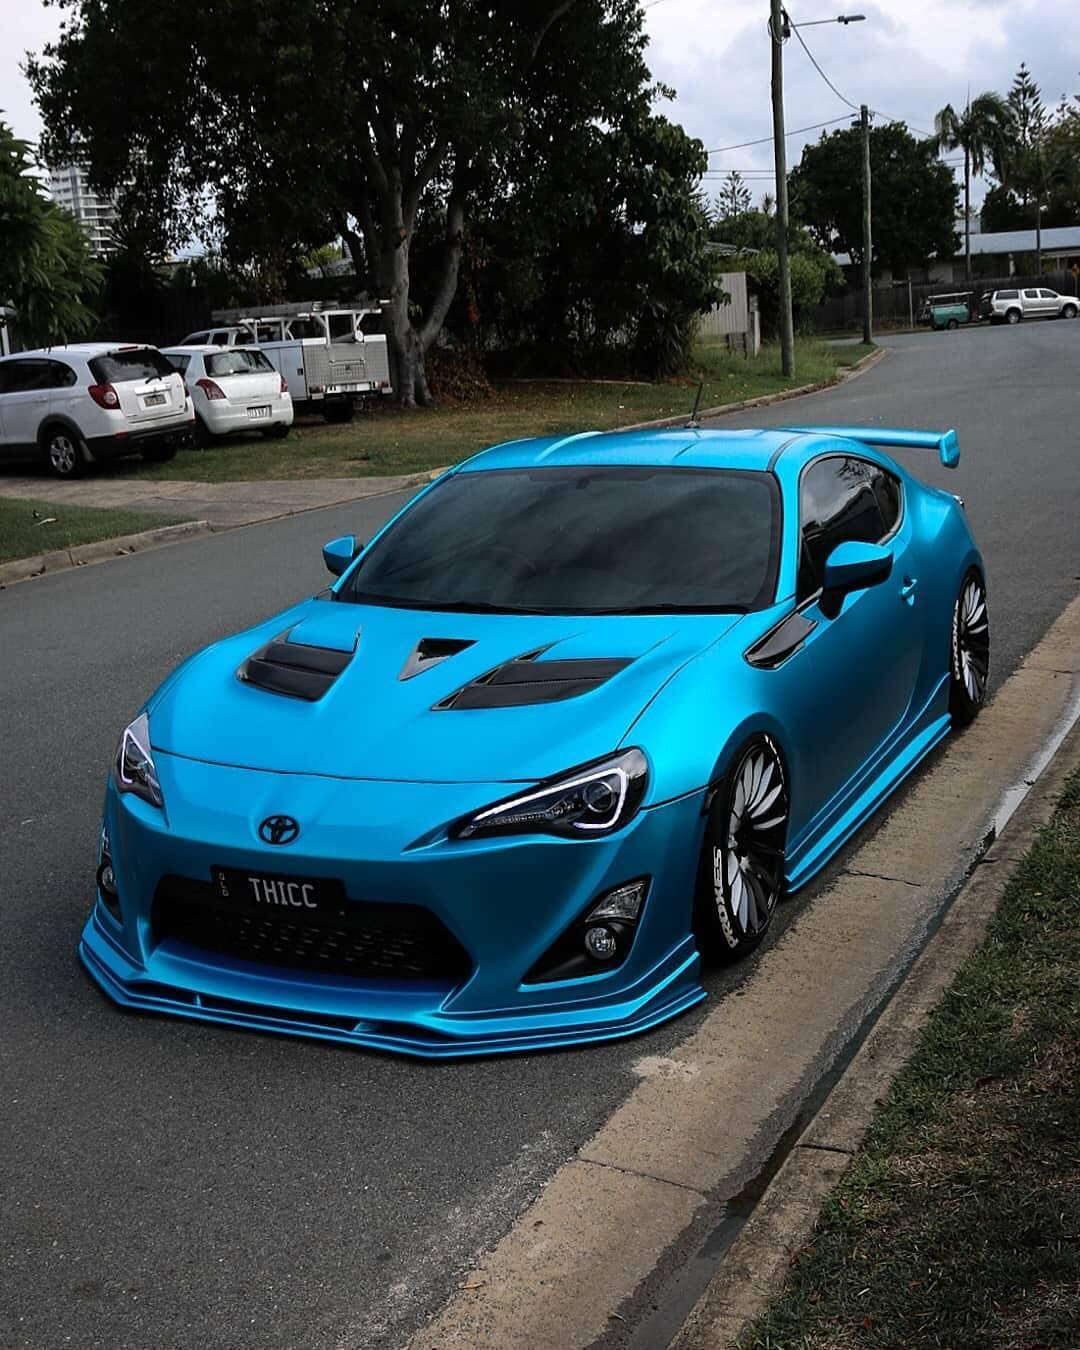 Toyota GT86 . Owner thicc86 . Subscribe our page, if you